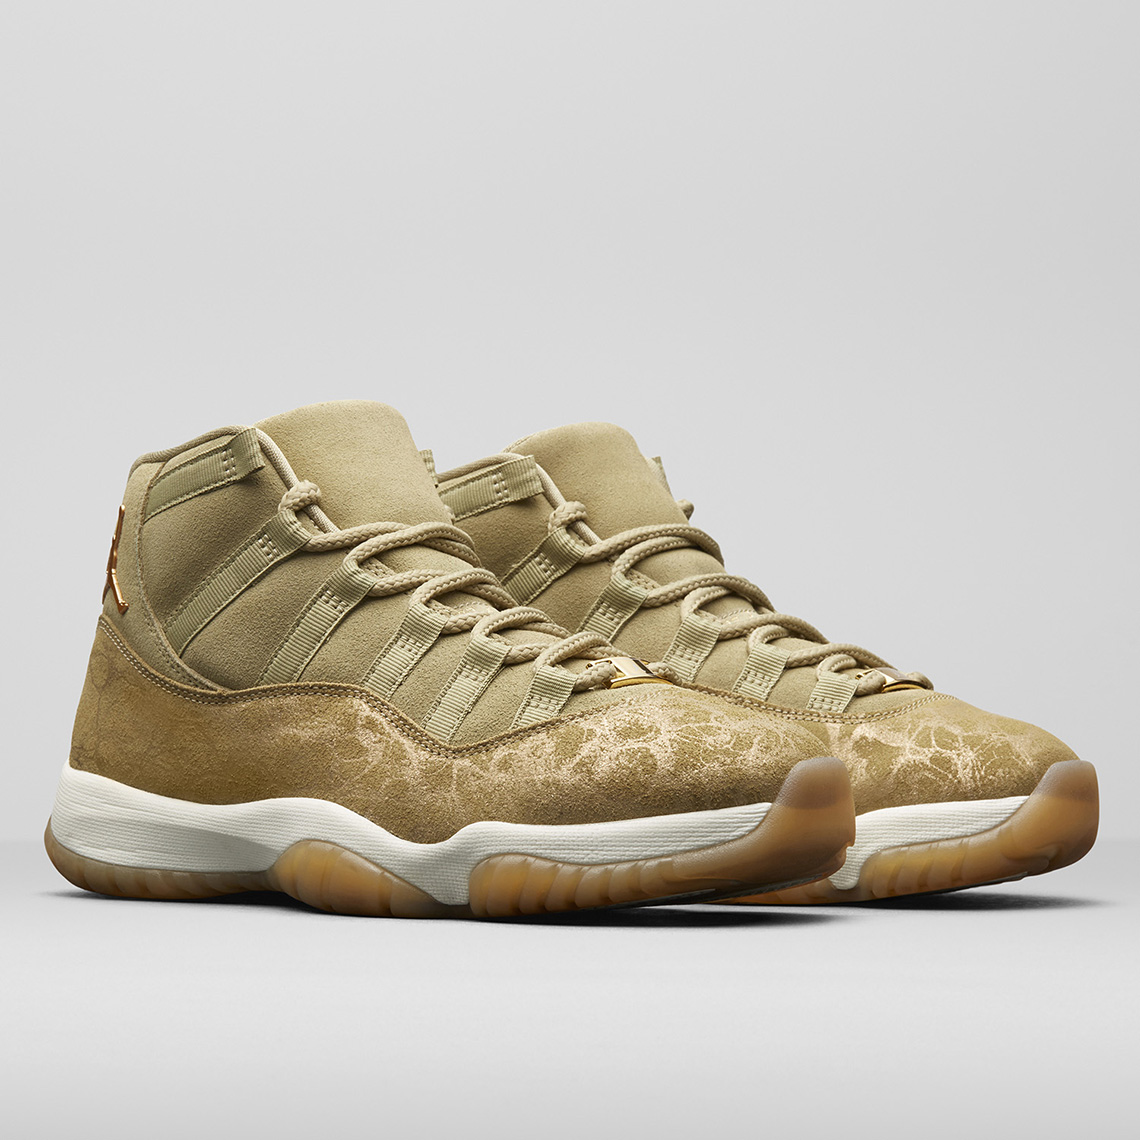 "0bbc7b8bba54ed Air Jordan 11 ""Olive Lux"" Air Jordan 11 Olive Lux Store List Release Date   November 23"